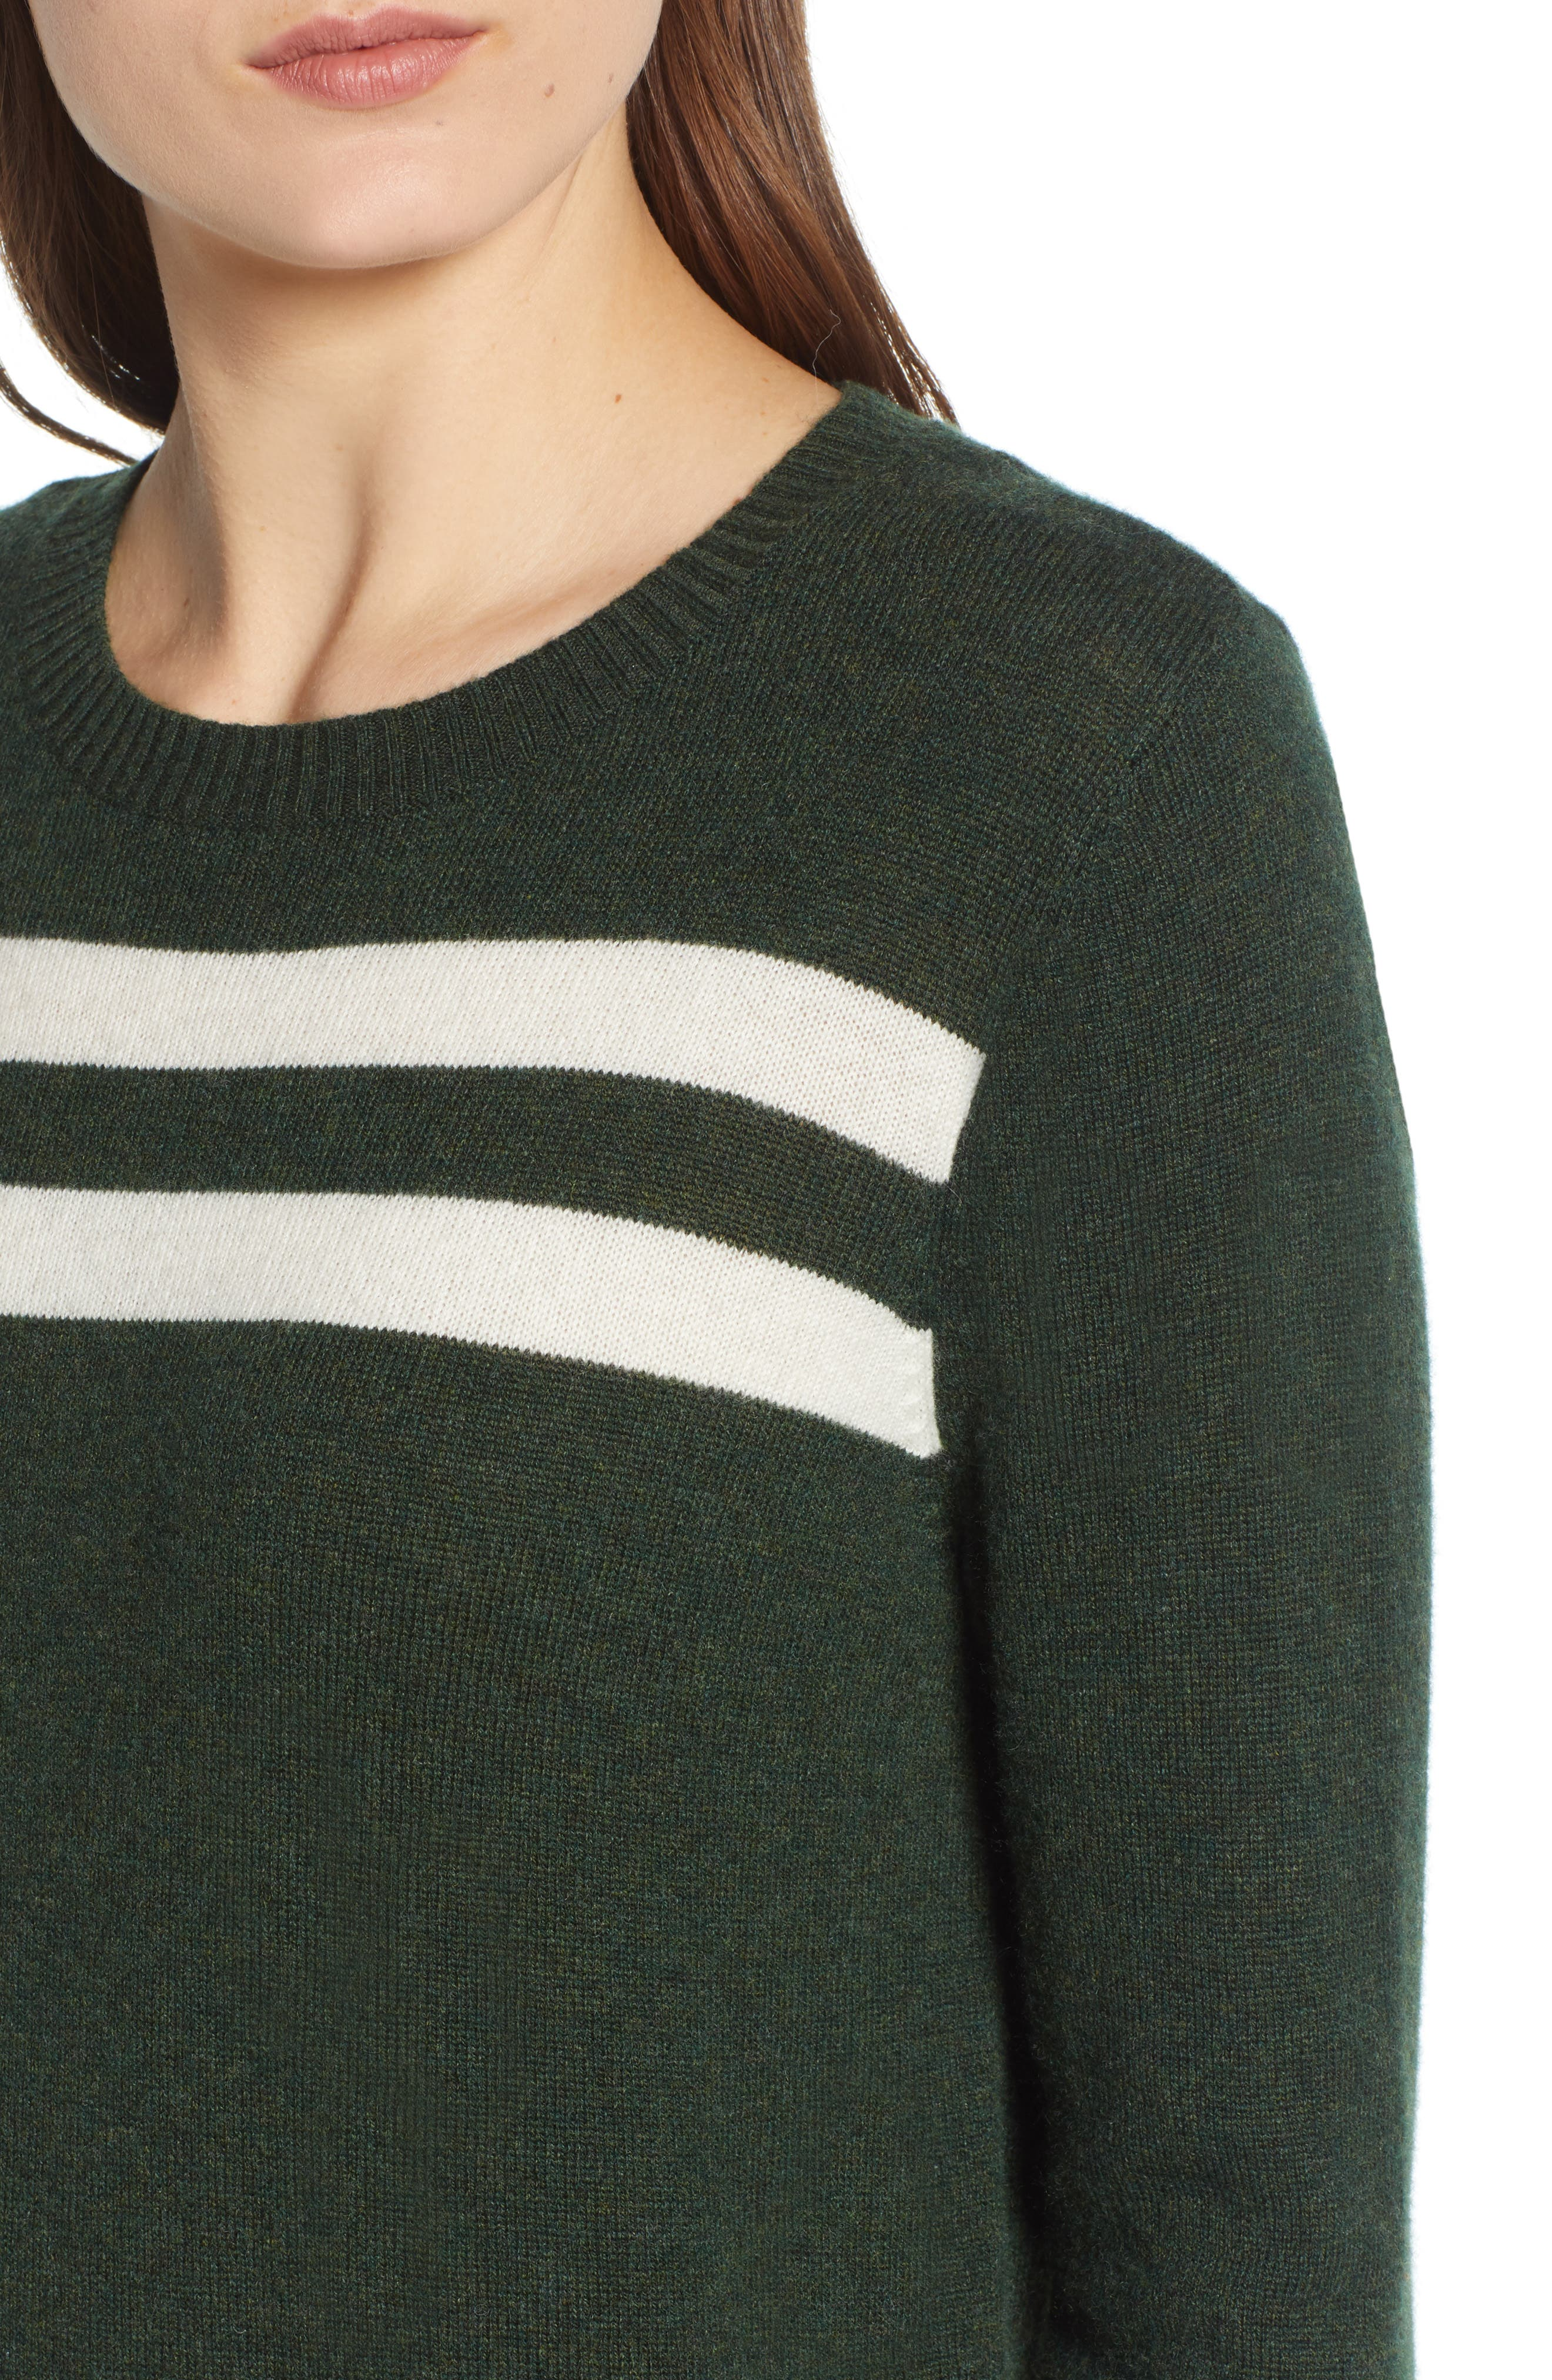 Marlowe Sweater,                             Alternate thumbnail 4, color,                             100